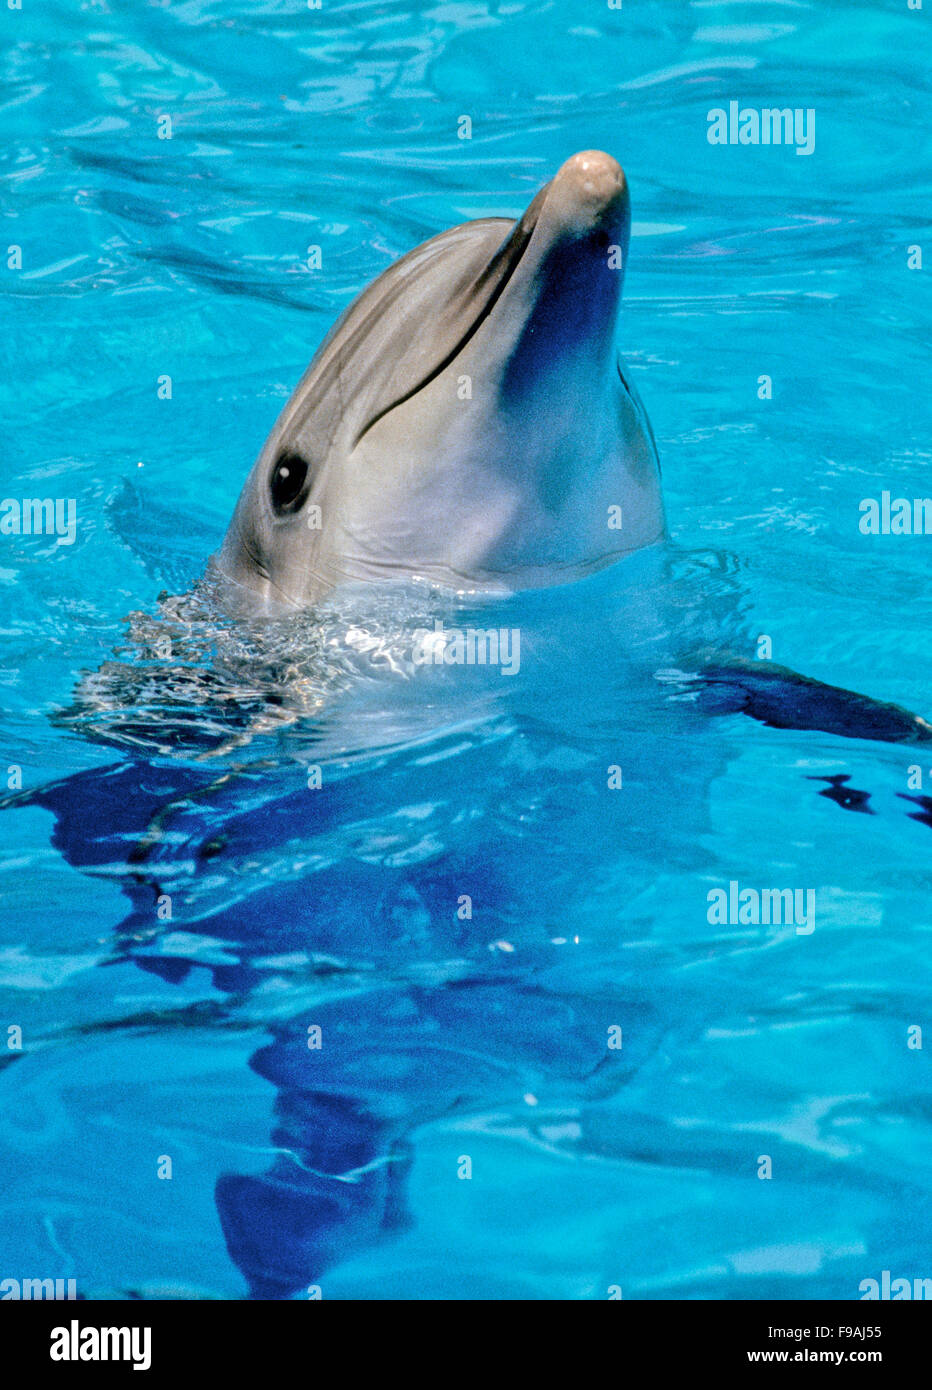 Bottlenose dolphins, the genus Tursiops, are the most common and well-known members of the family Delphinidae - Stock Image